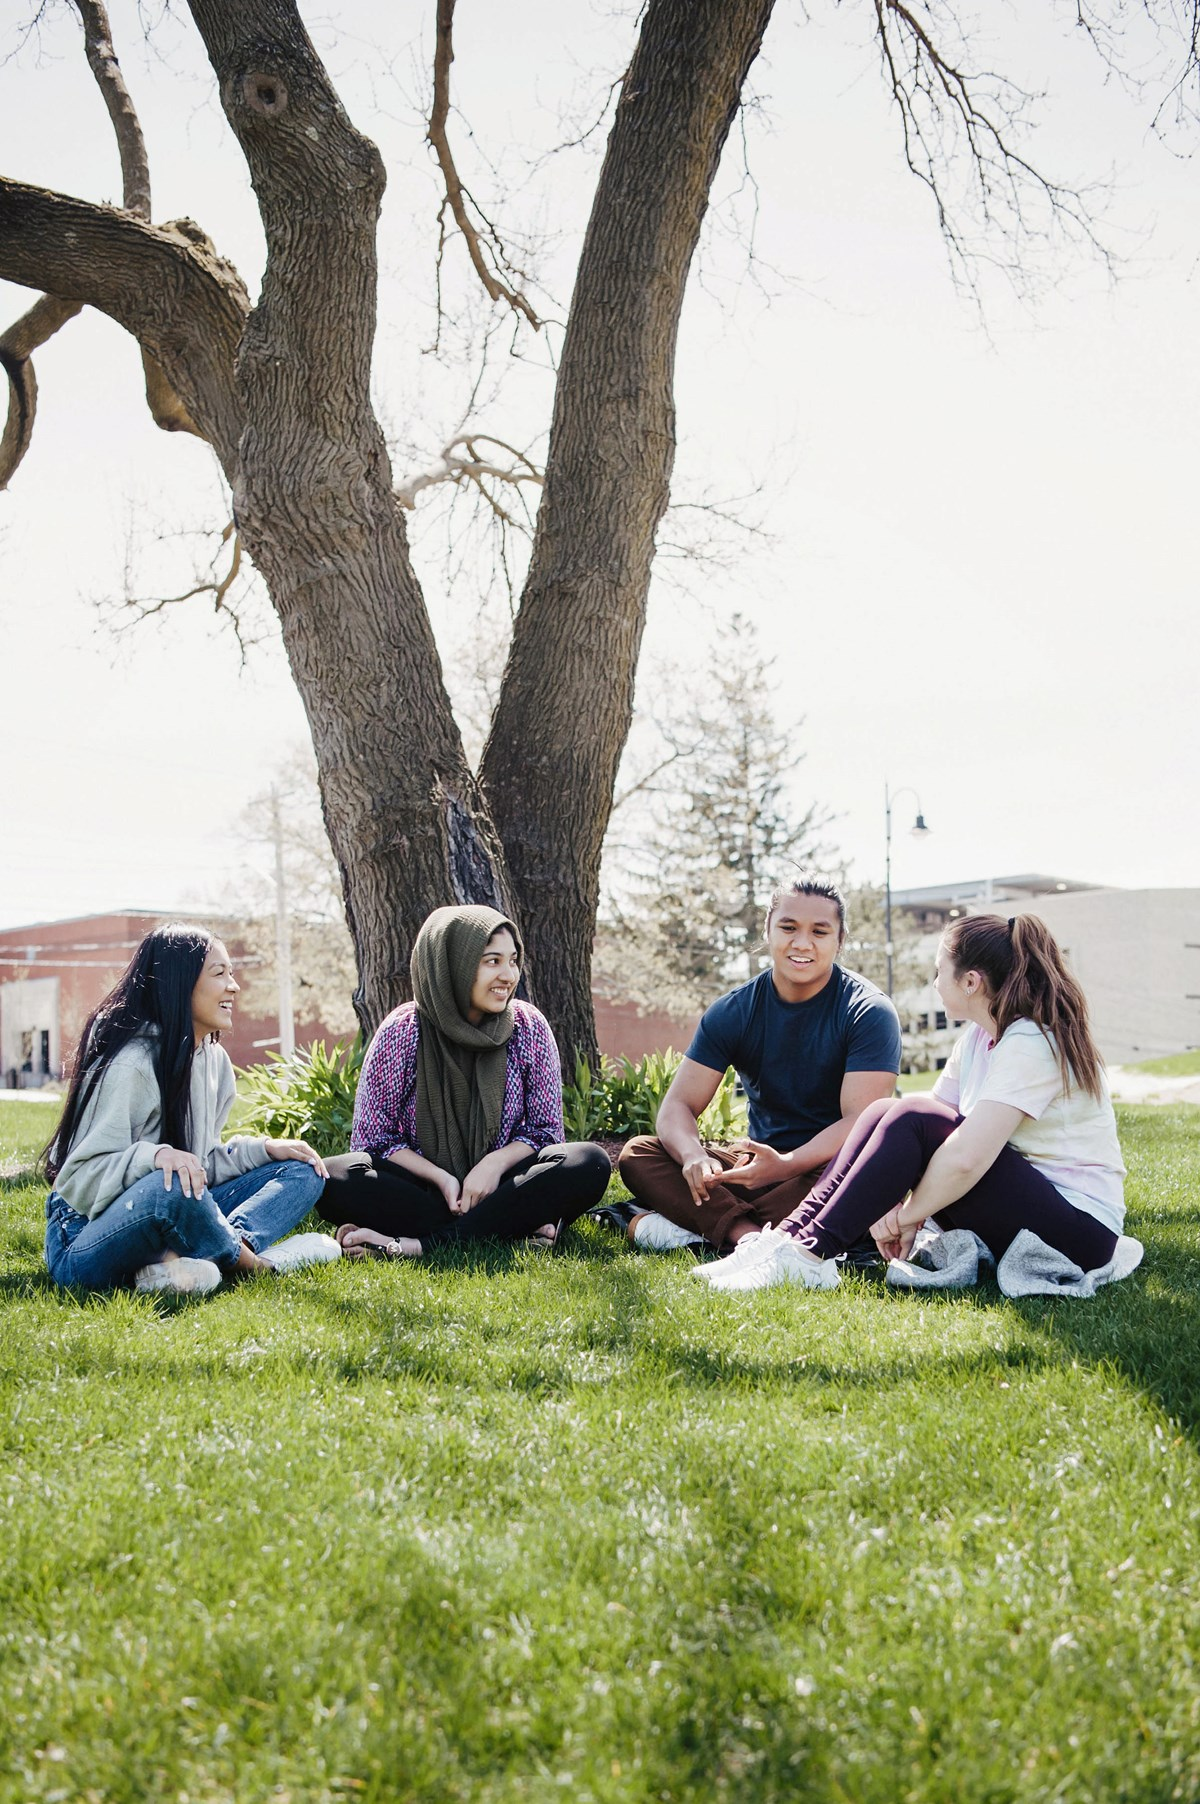 Students sit together in a group under a tree on South Campus.